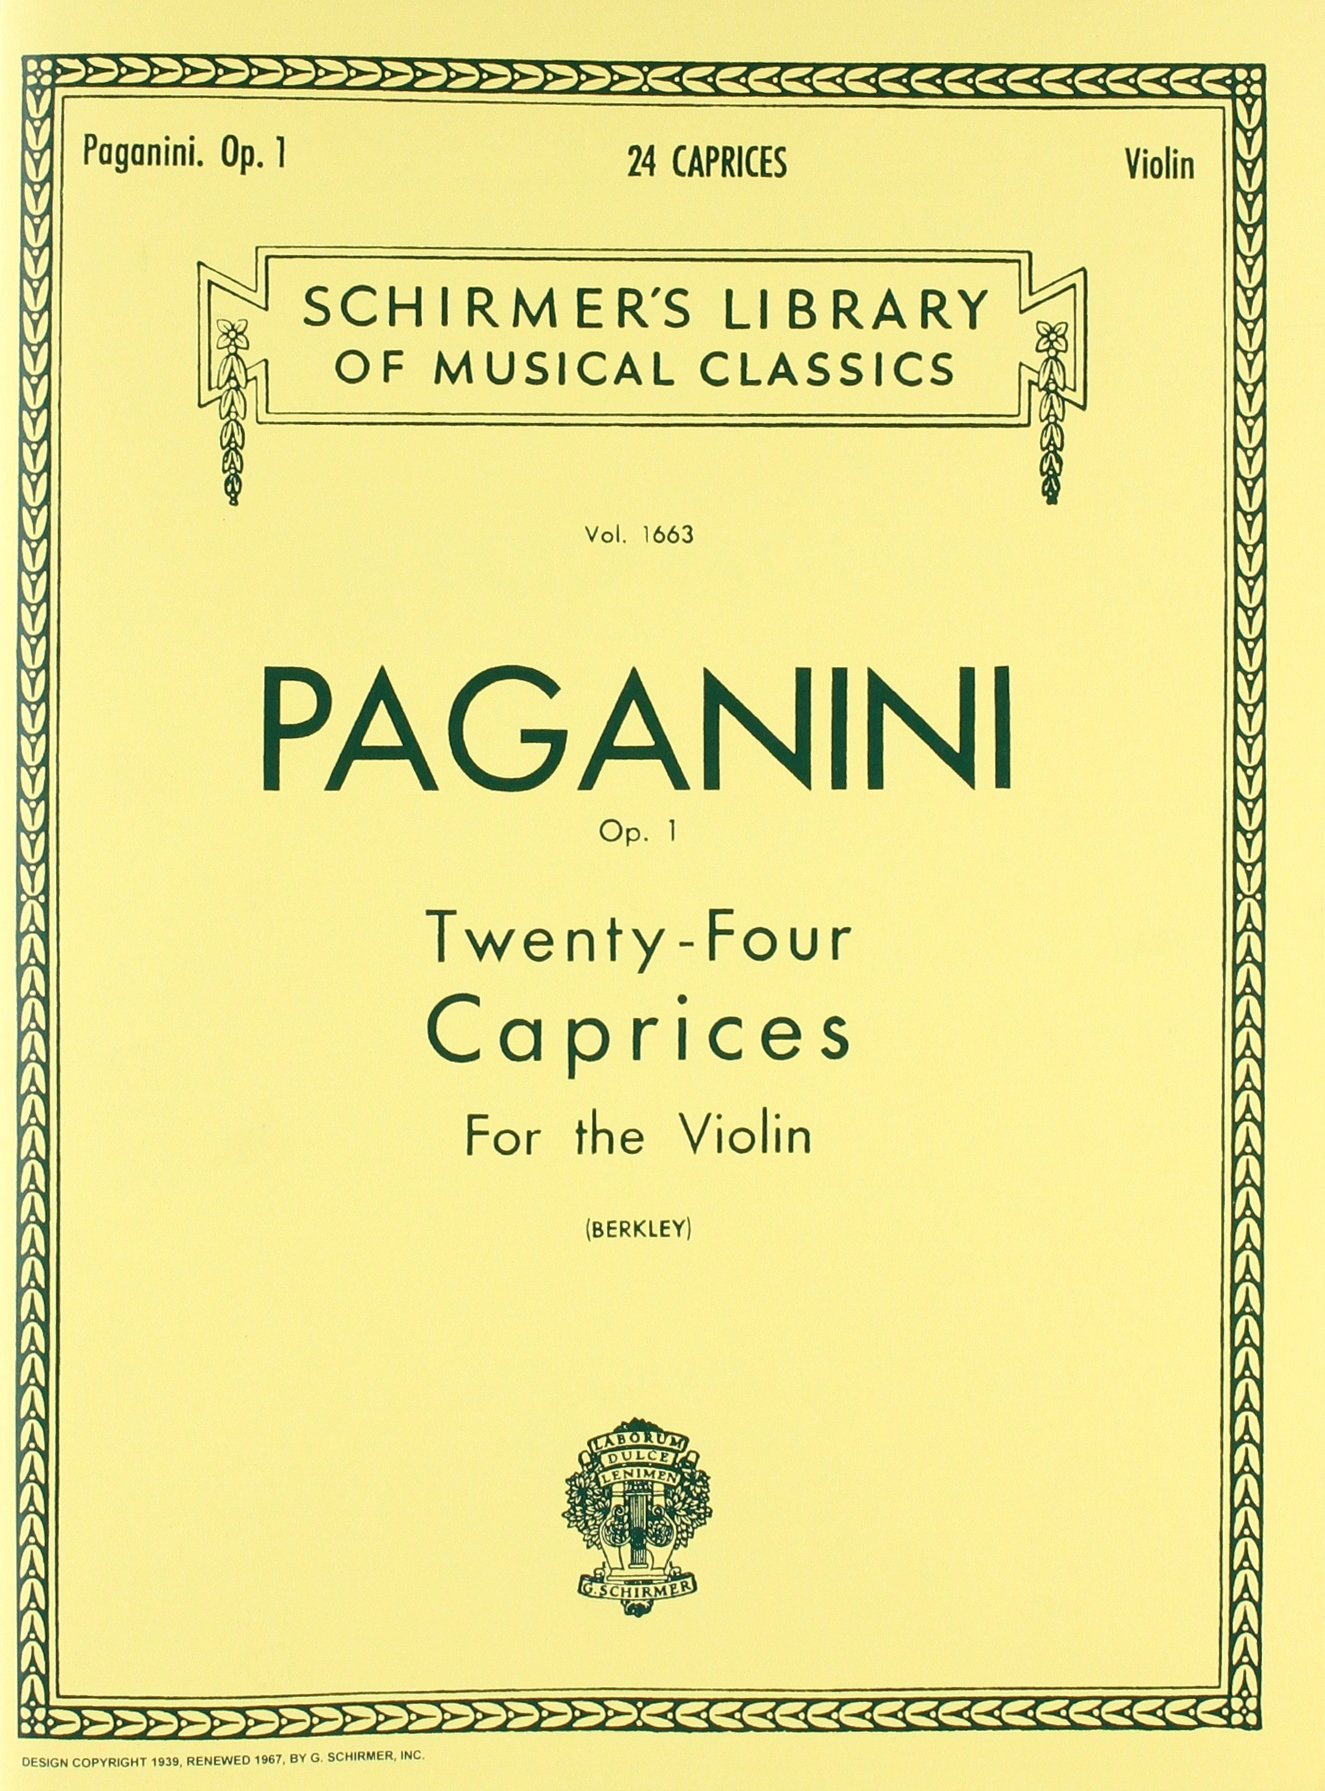 24 Caprices, Op. 1: Schirmer Library of Classics Volume 1663 Violin Solo (Schirmer's  Library of Musical Classics) Paperback – November 1, 1986